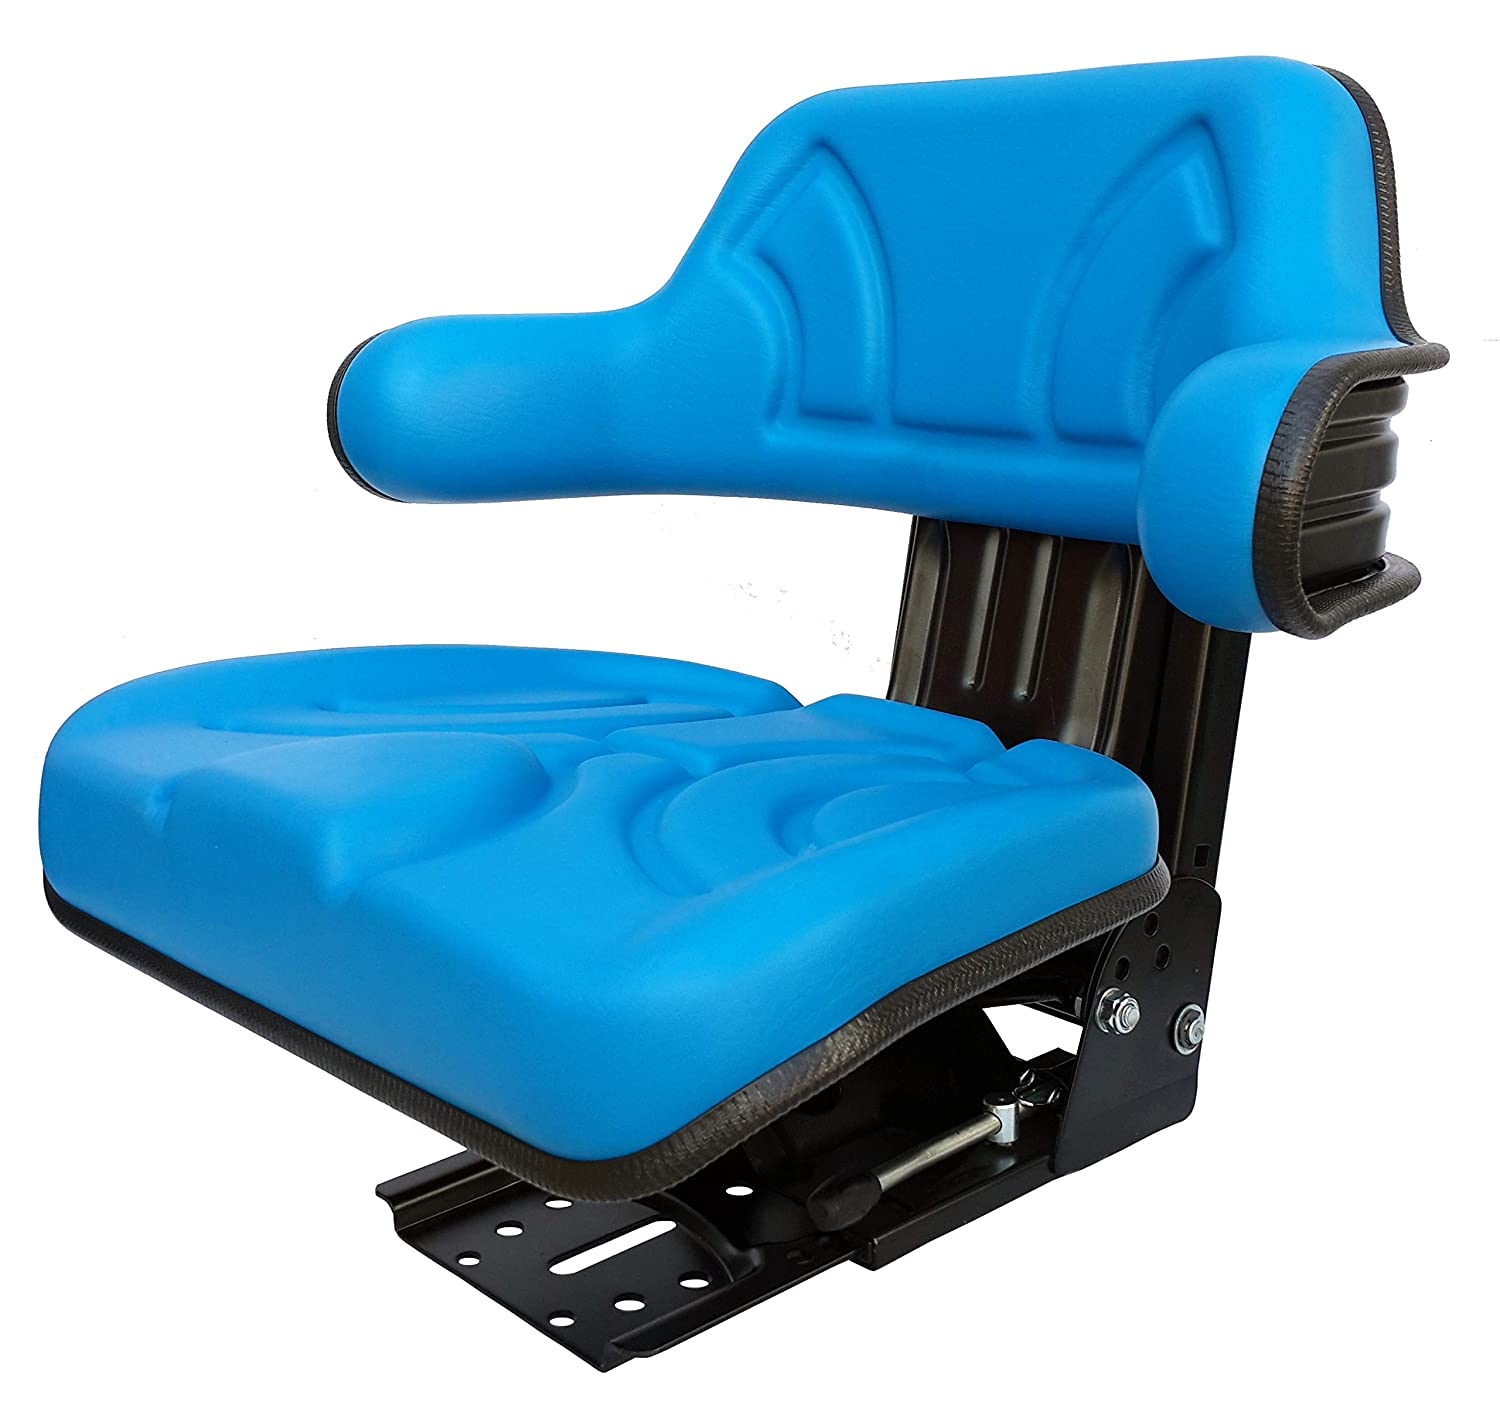 Tractor Asiento schlepper Asiento New Holland Ford Oldtimer Asiento PVC Azul Compatible Con KlaraSeats